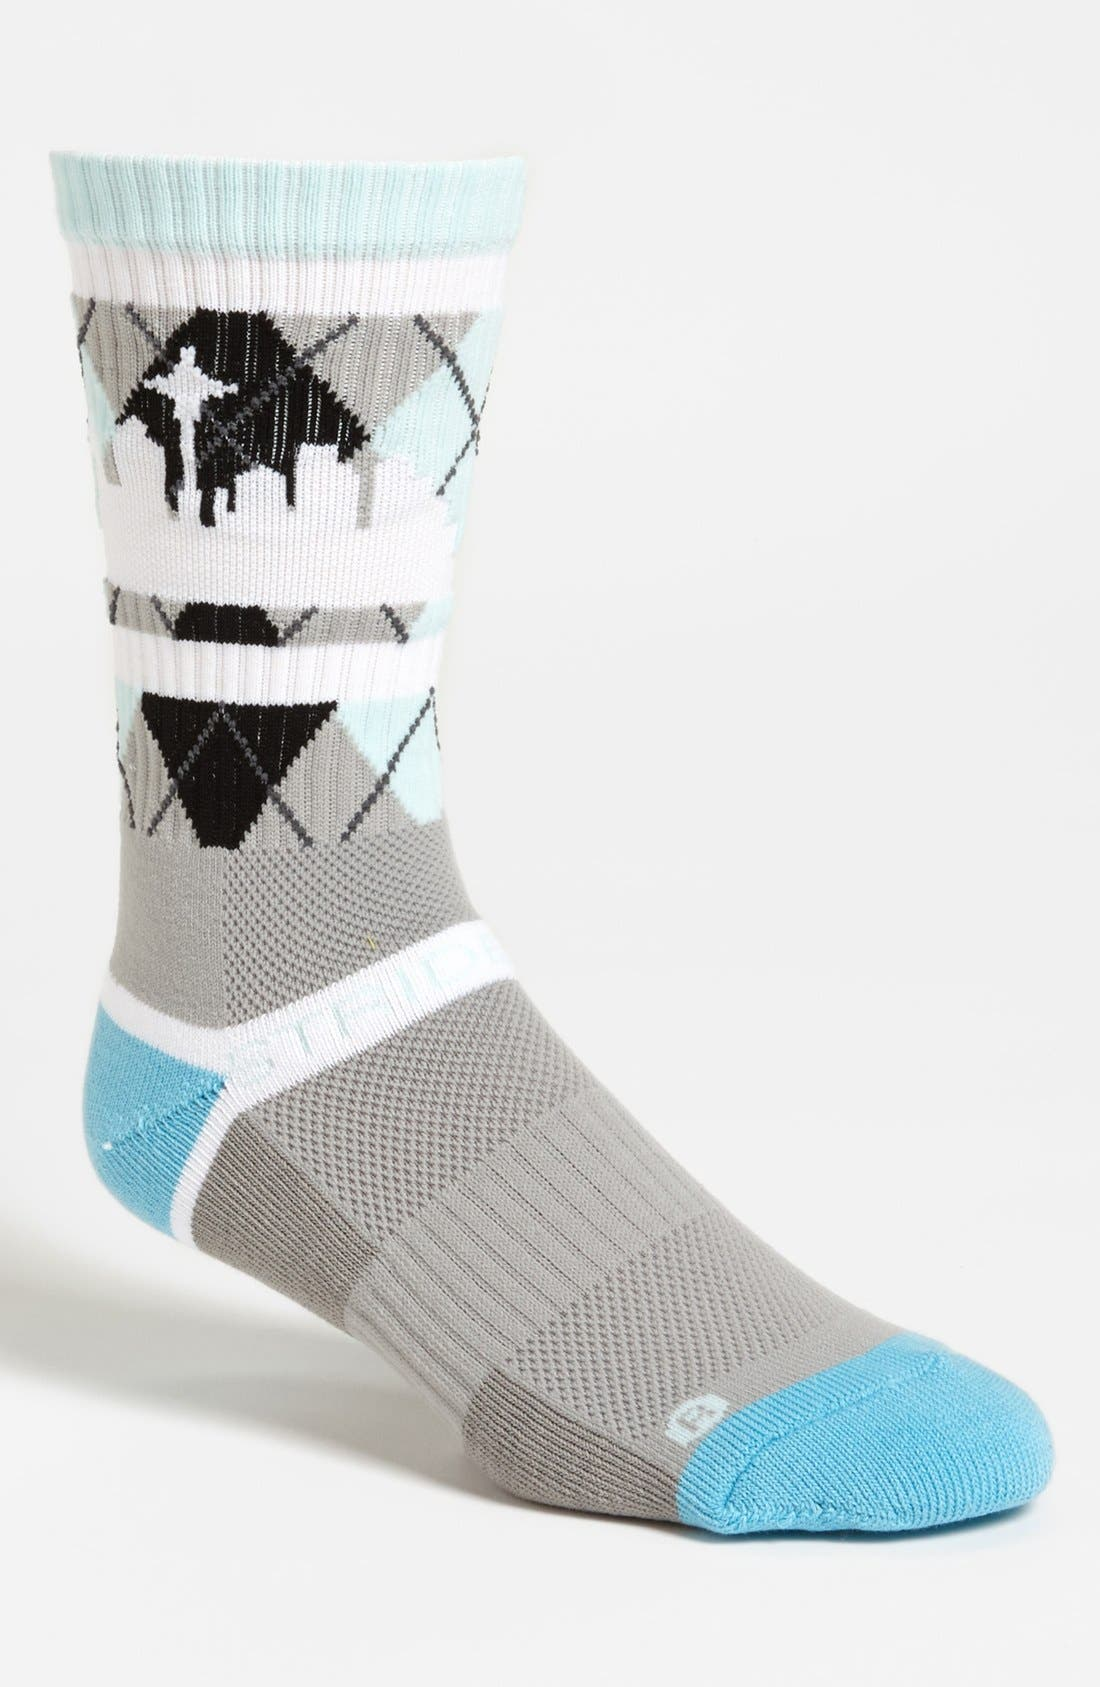 Main Image - STRIDELINE 'Seattle' Socks